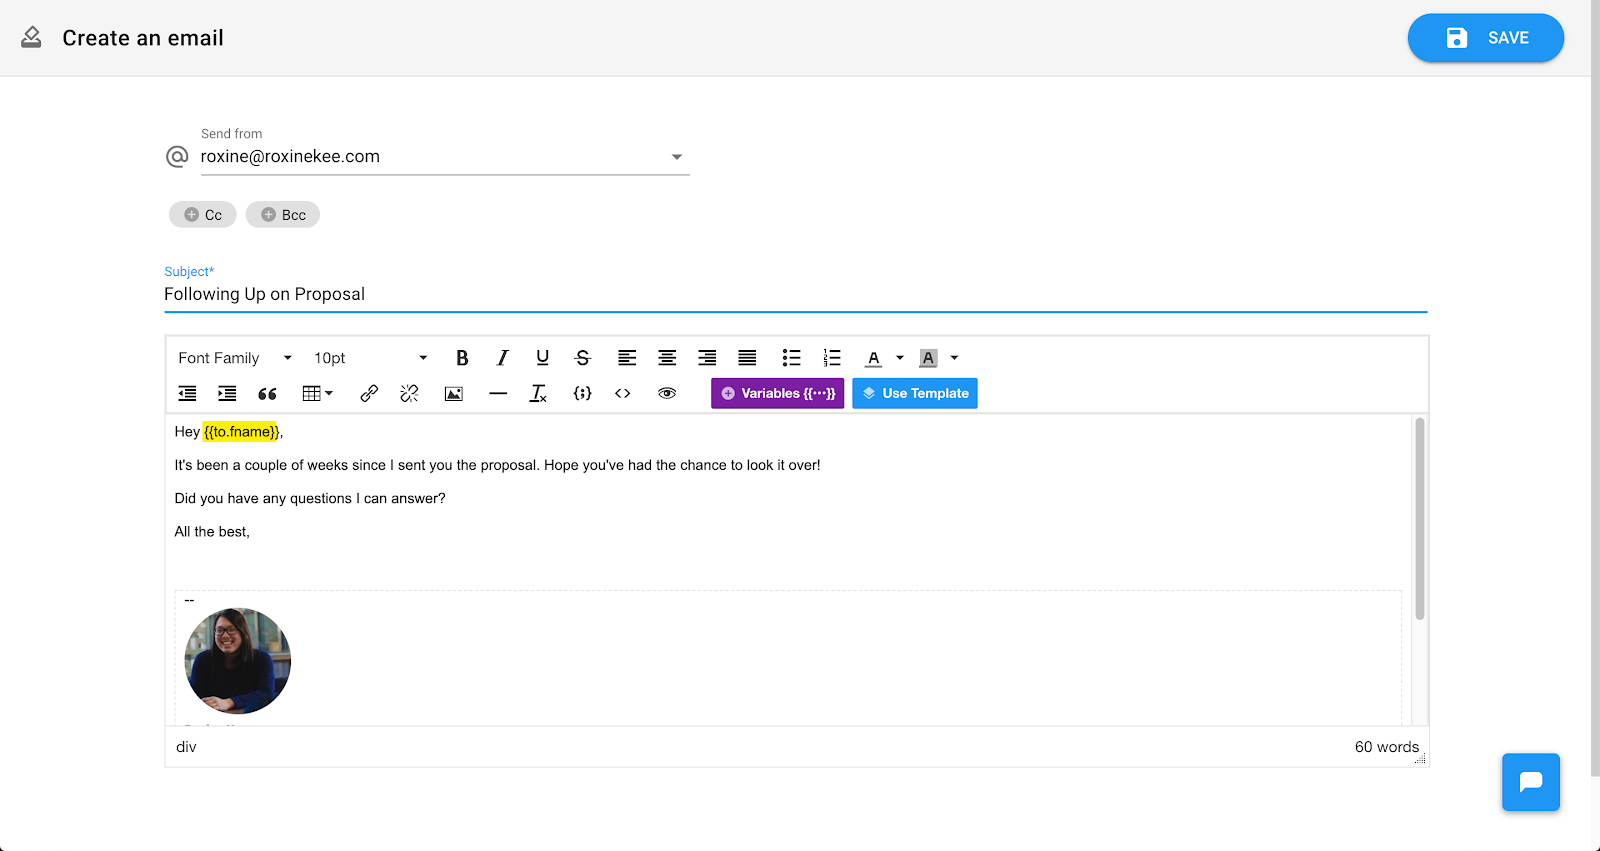 Email Automation: You can easily personalize the email with someone's name.